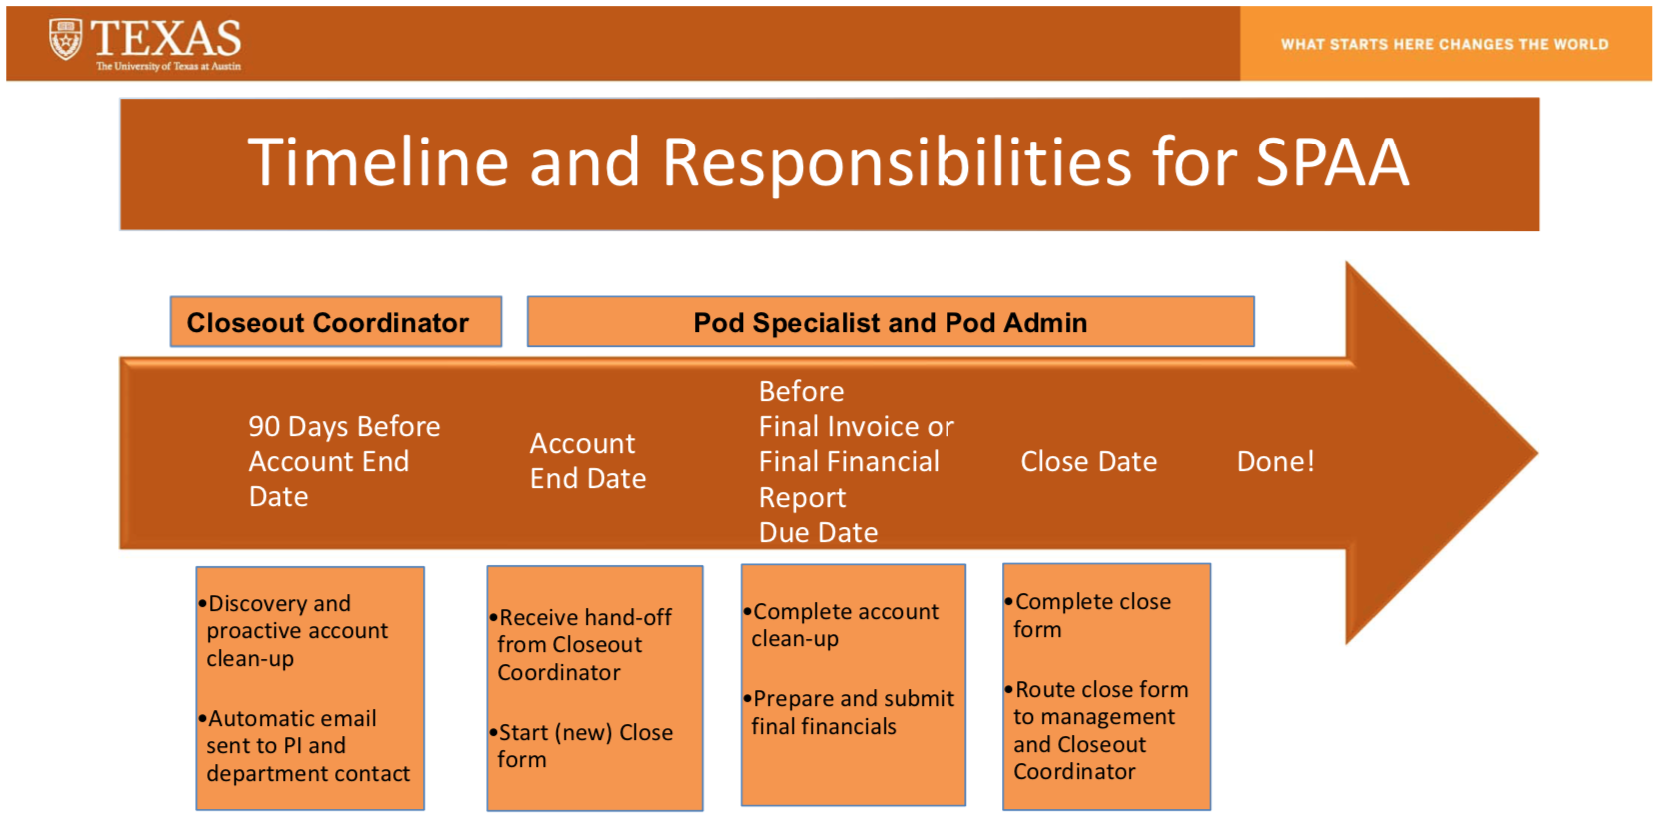 Timeline_and_Responsibilities_for_SPAA graphic